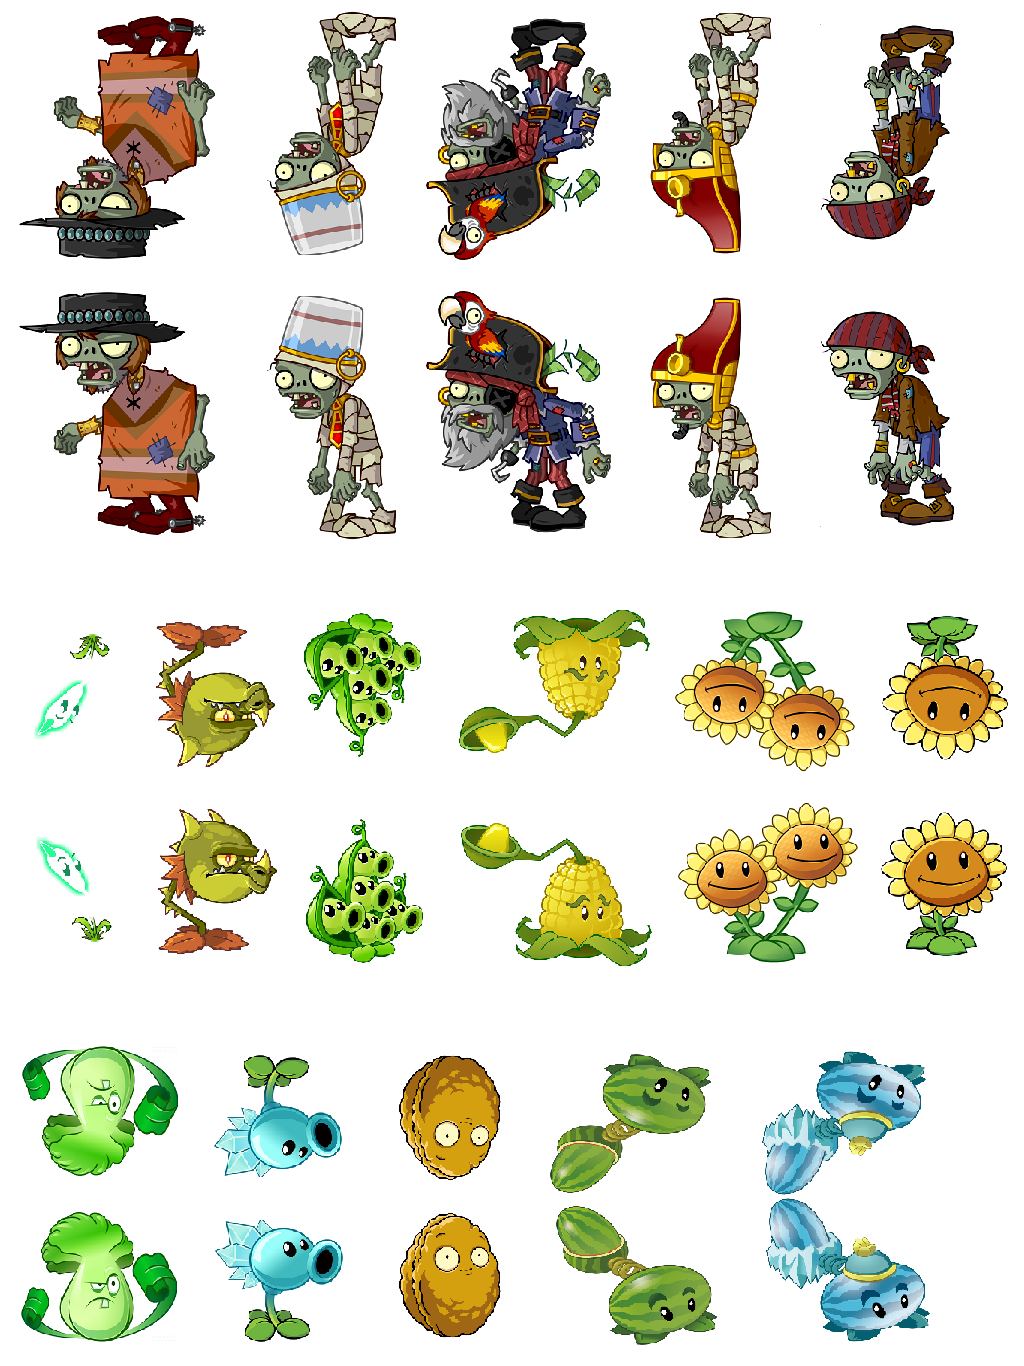 Pin By Crafty Annabelle On Plants Vs Zombies Printables In